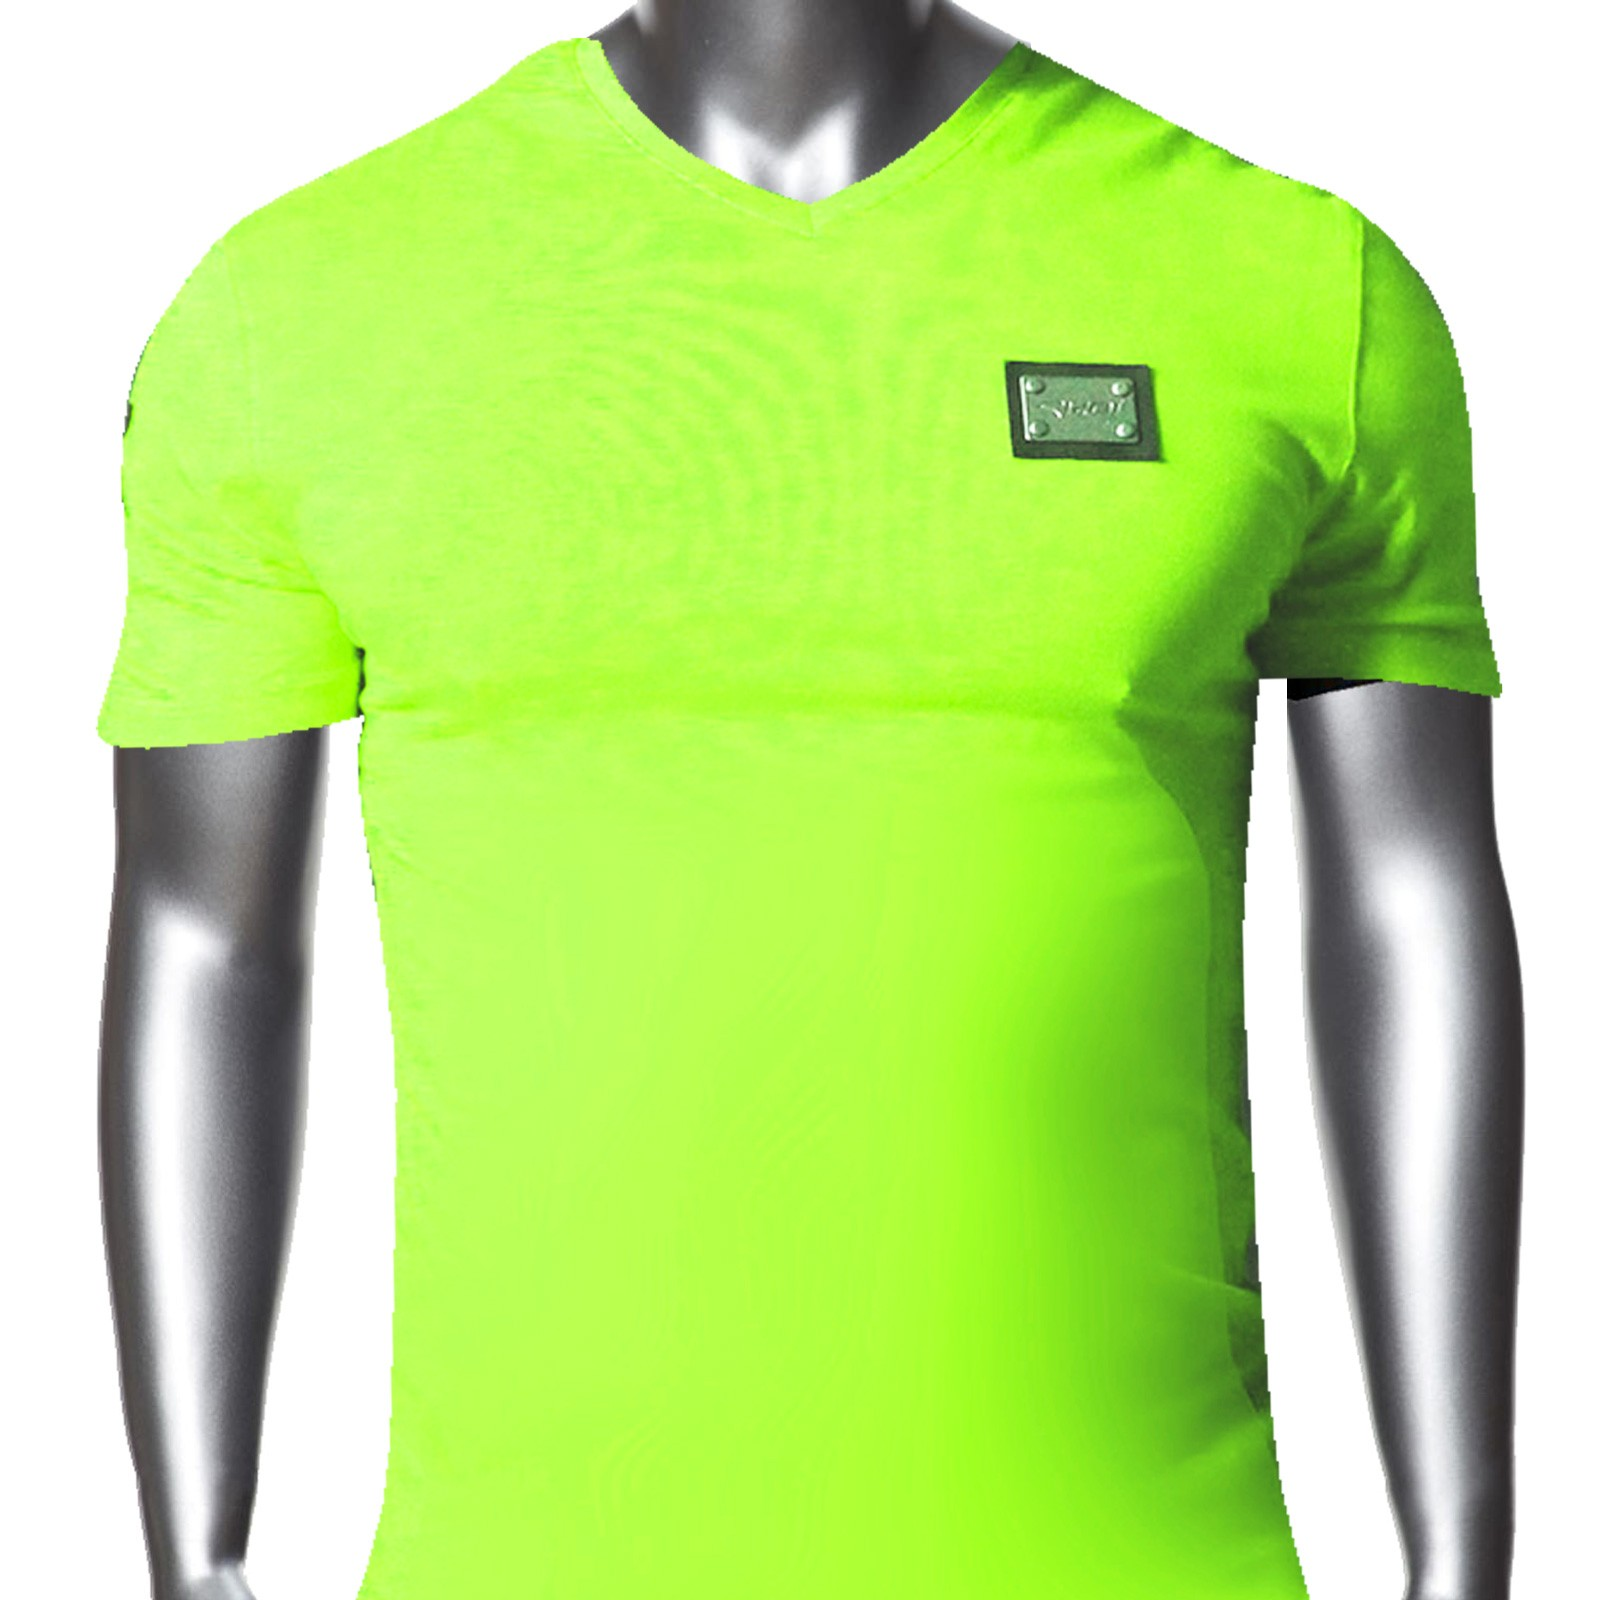 tshirt ekoi 2014 col v fluo vert ekoi. Black Bedroom Furniture Sets. Home Design Ideas